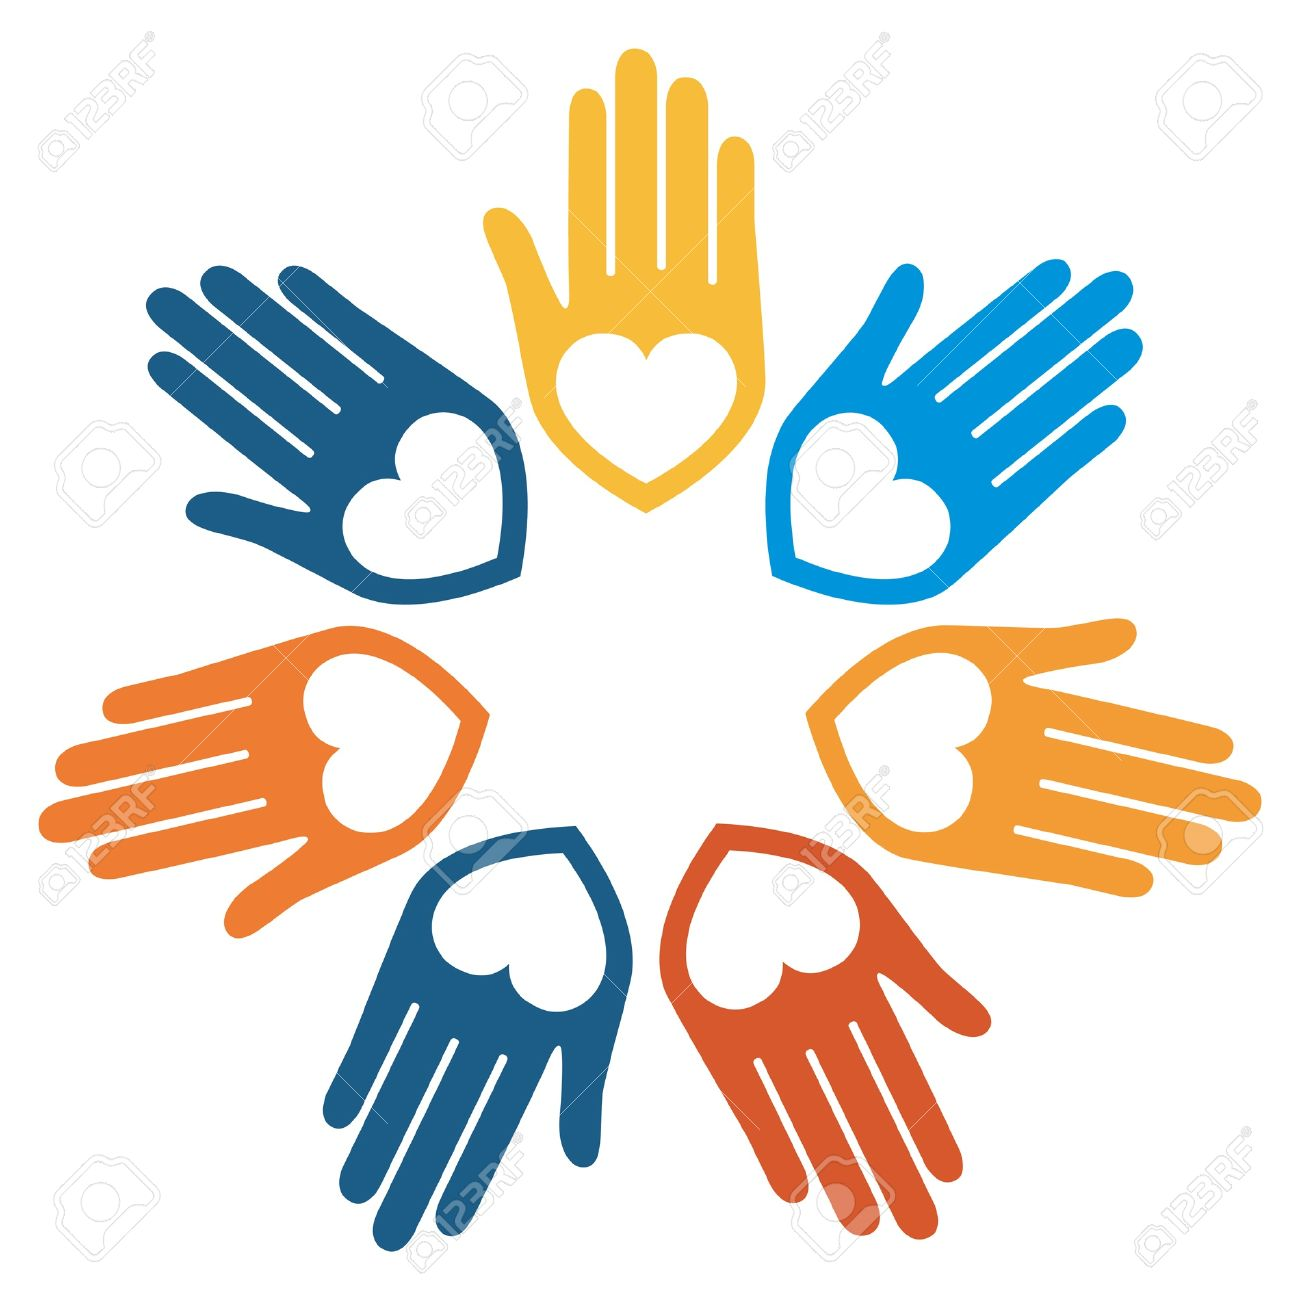 united hands and hearts vector design royalty free cliparts rh 123rf com Vector Cartoon Hands Cupped Hands Vector